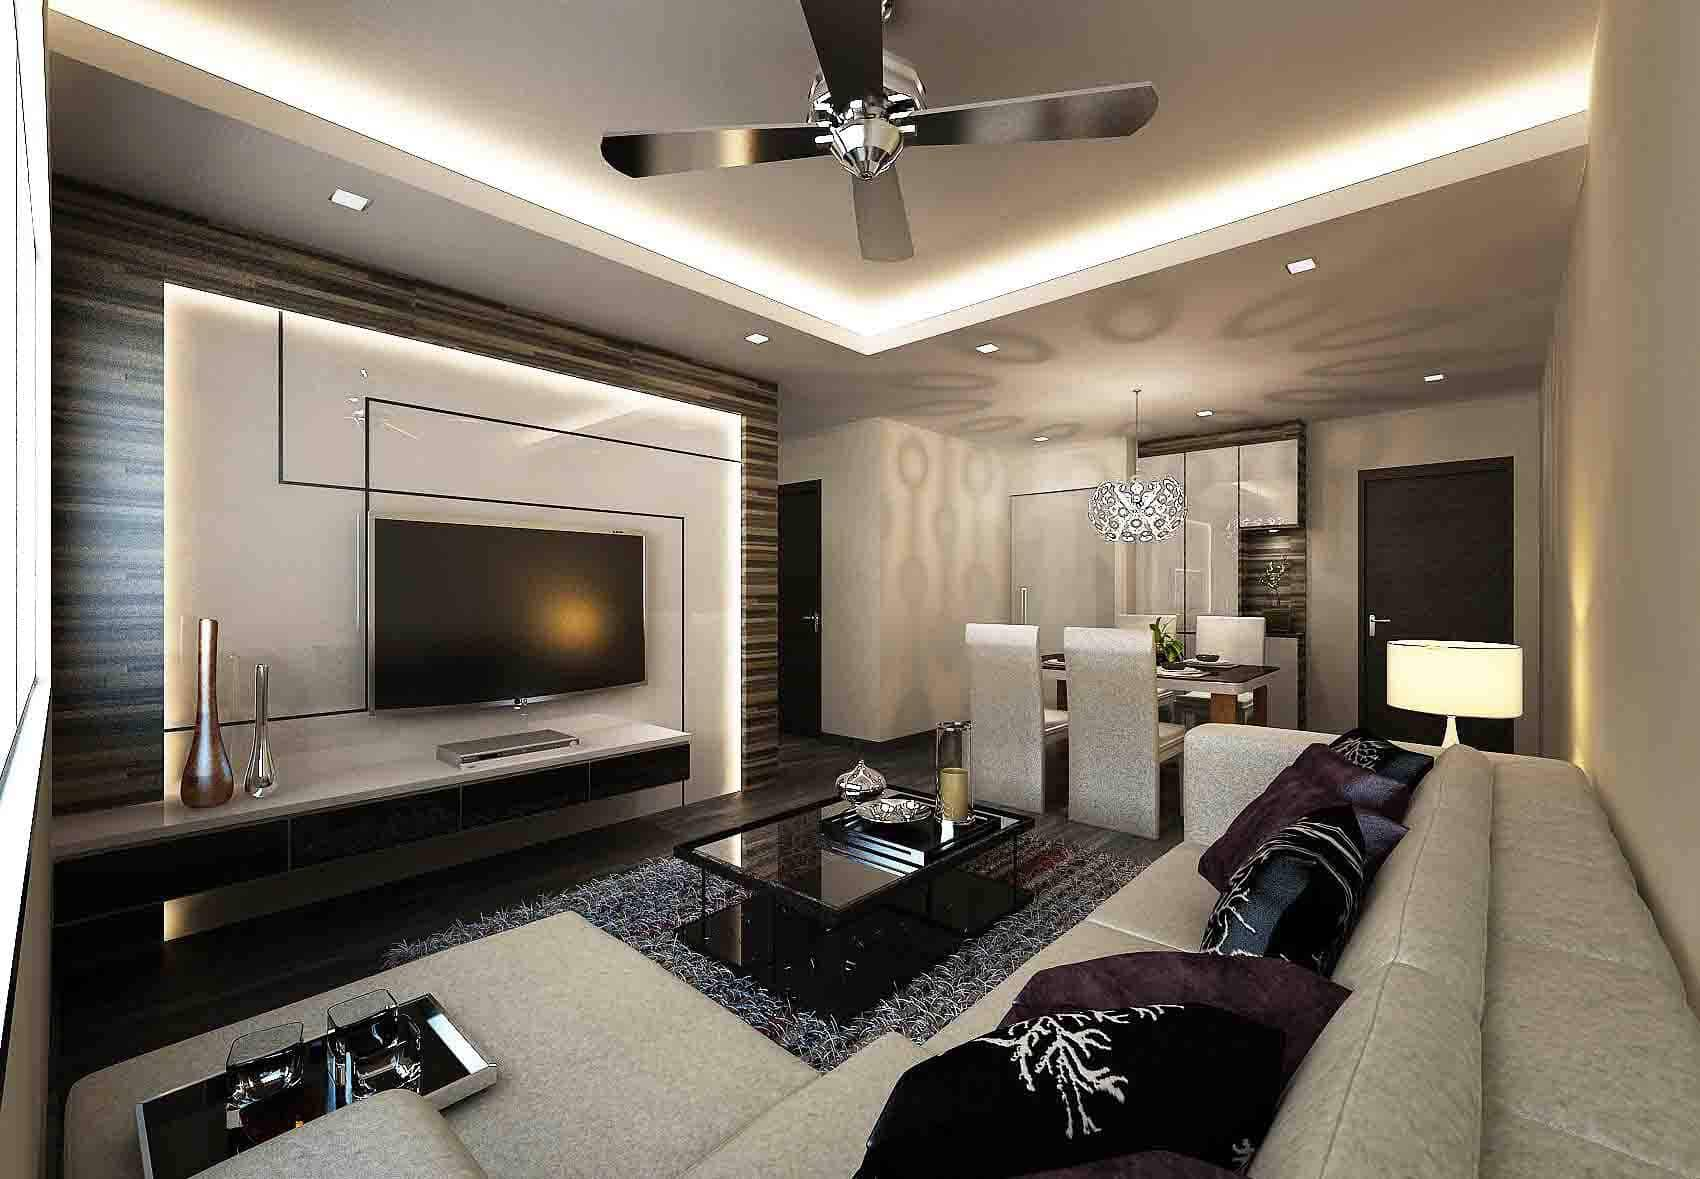 5 elements of a successful living room concept juz interior - Living room interior decors ...